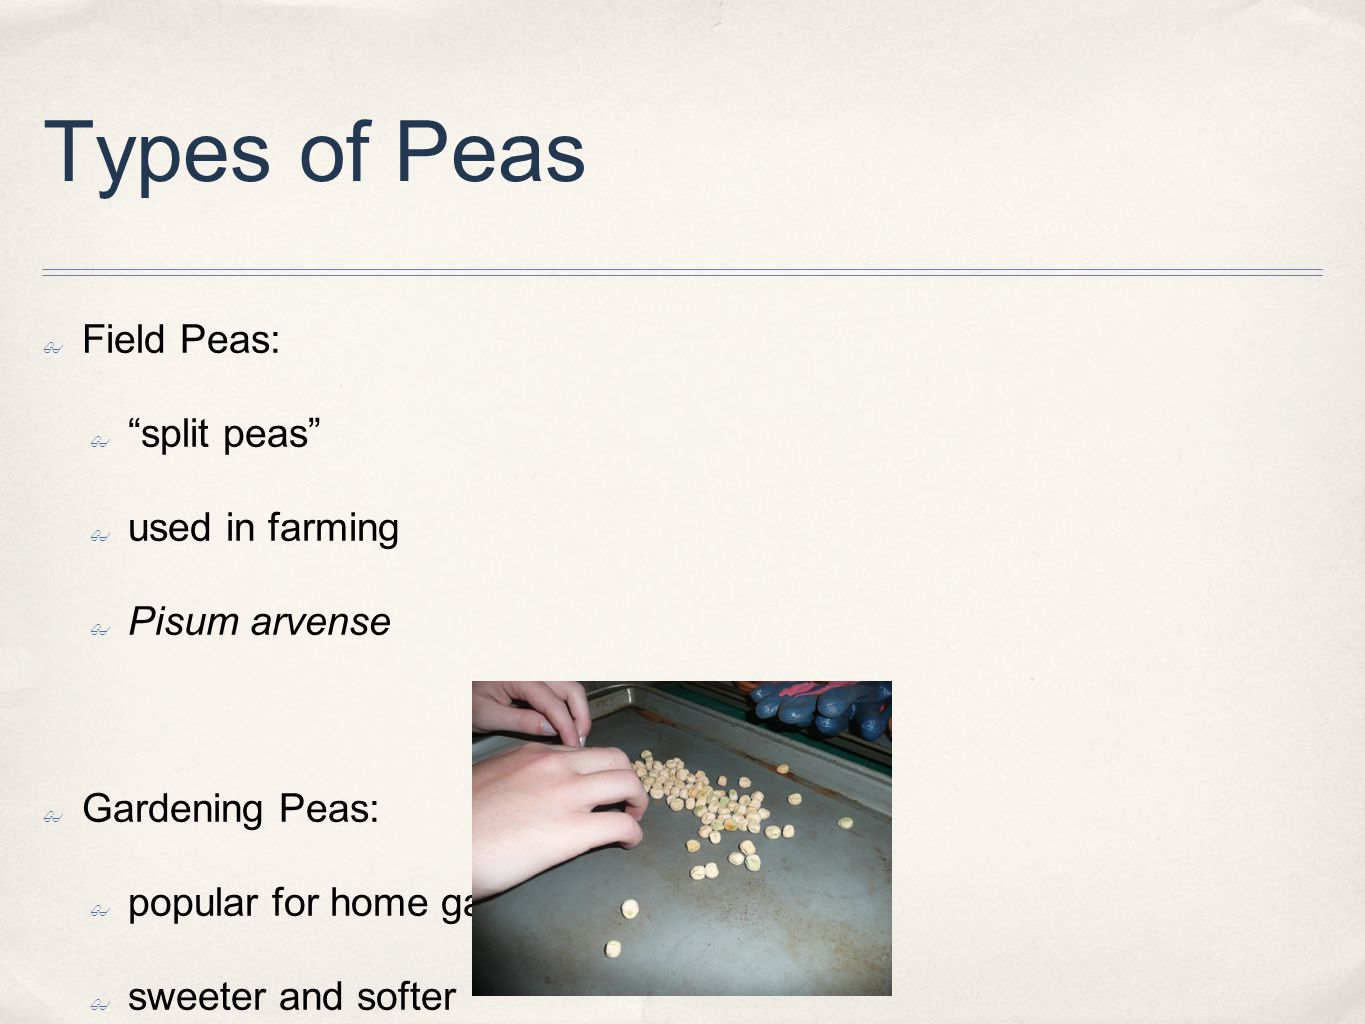 Types of Peas ✤ Field Peas: ✤ split peas ✤ used in farming ✤ Pisum arvense ✤ Gardening Peas: ✤ popular for home gardeners ✤ sweeter and softer ✤ Pisum sativum